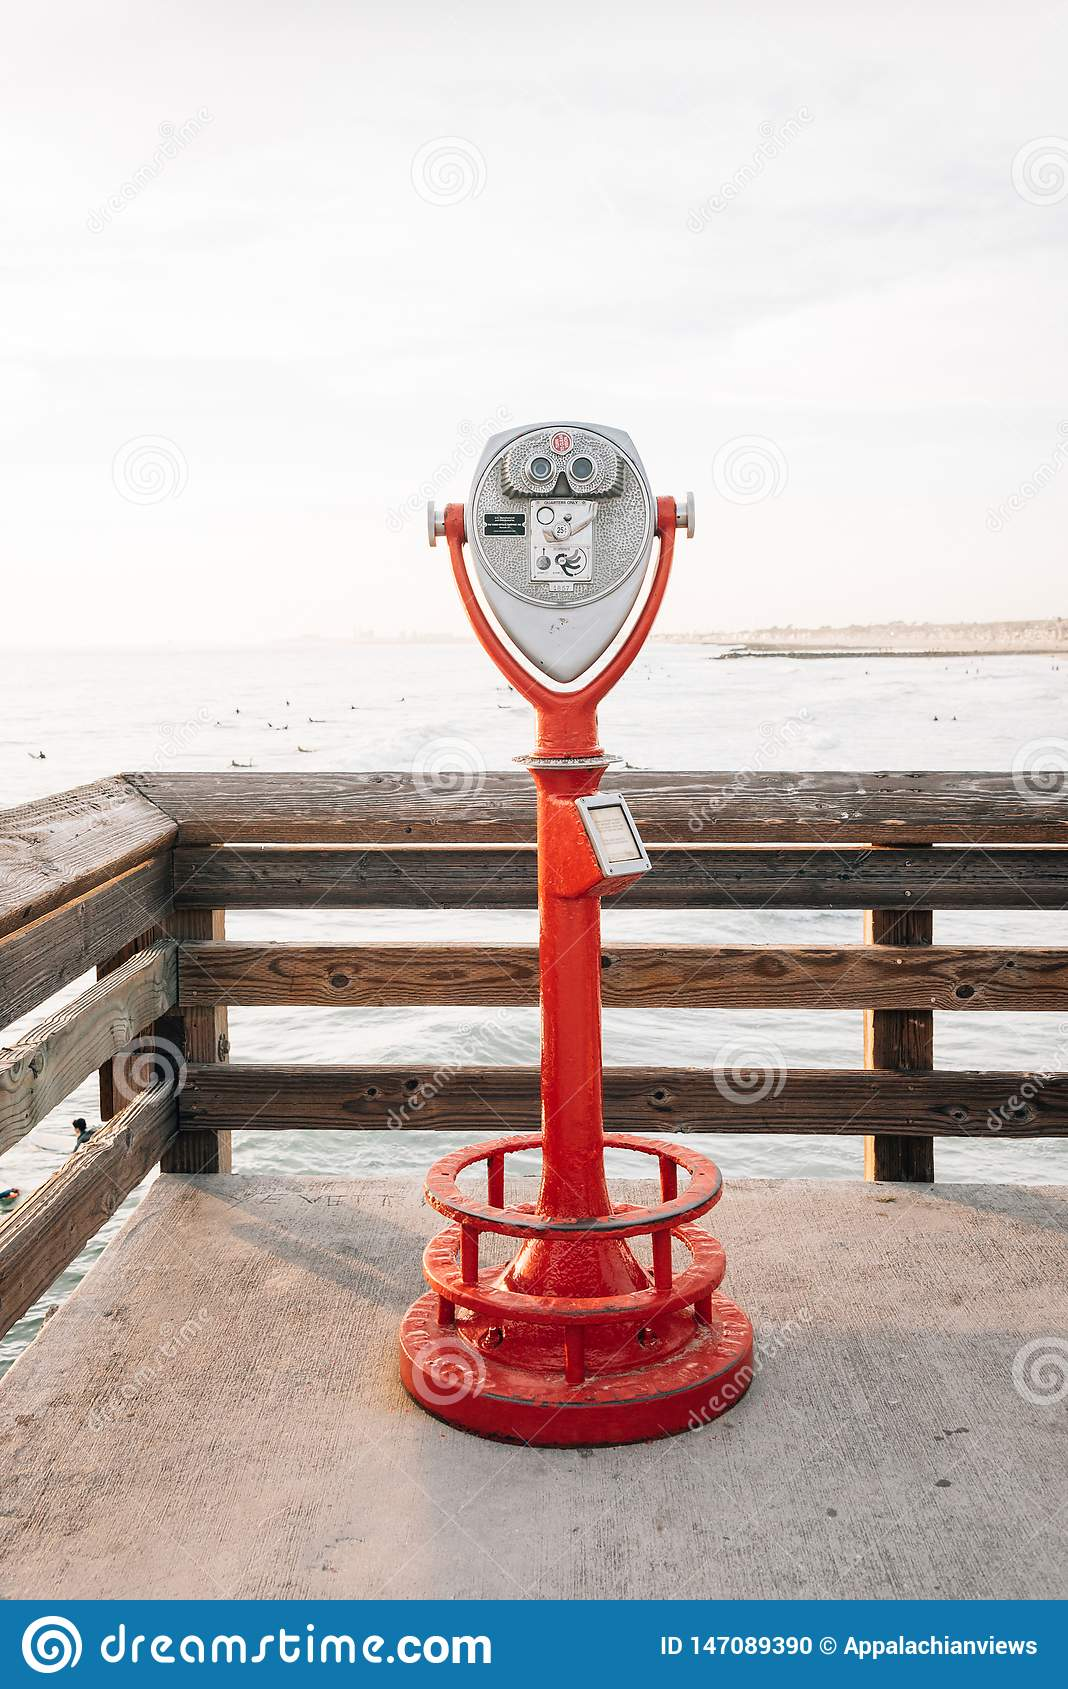 Binoculars On Beach Pier High-Res Stock Photo - Getty Images